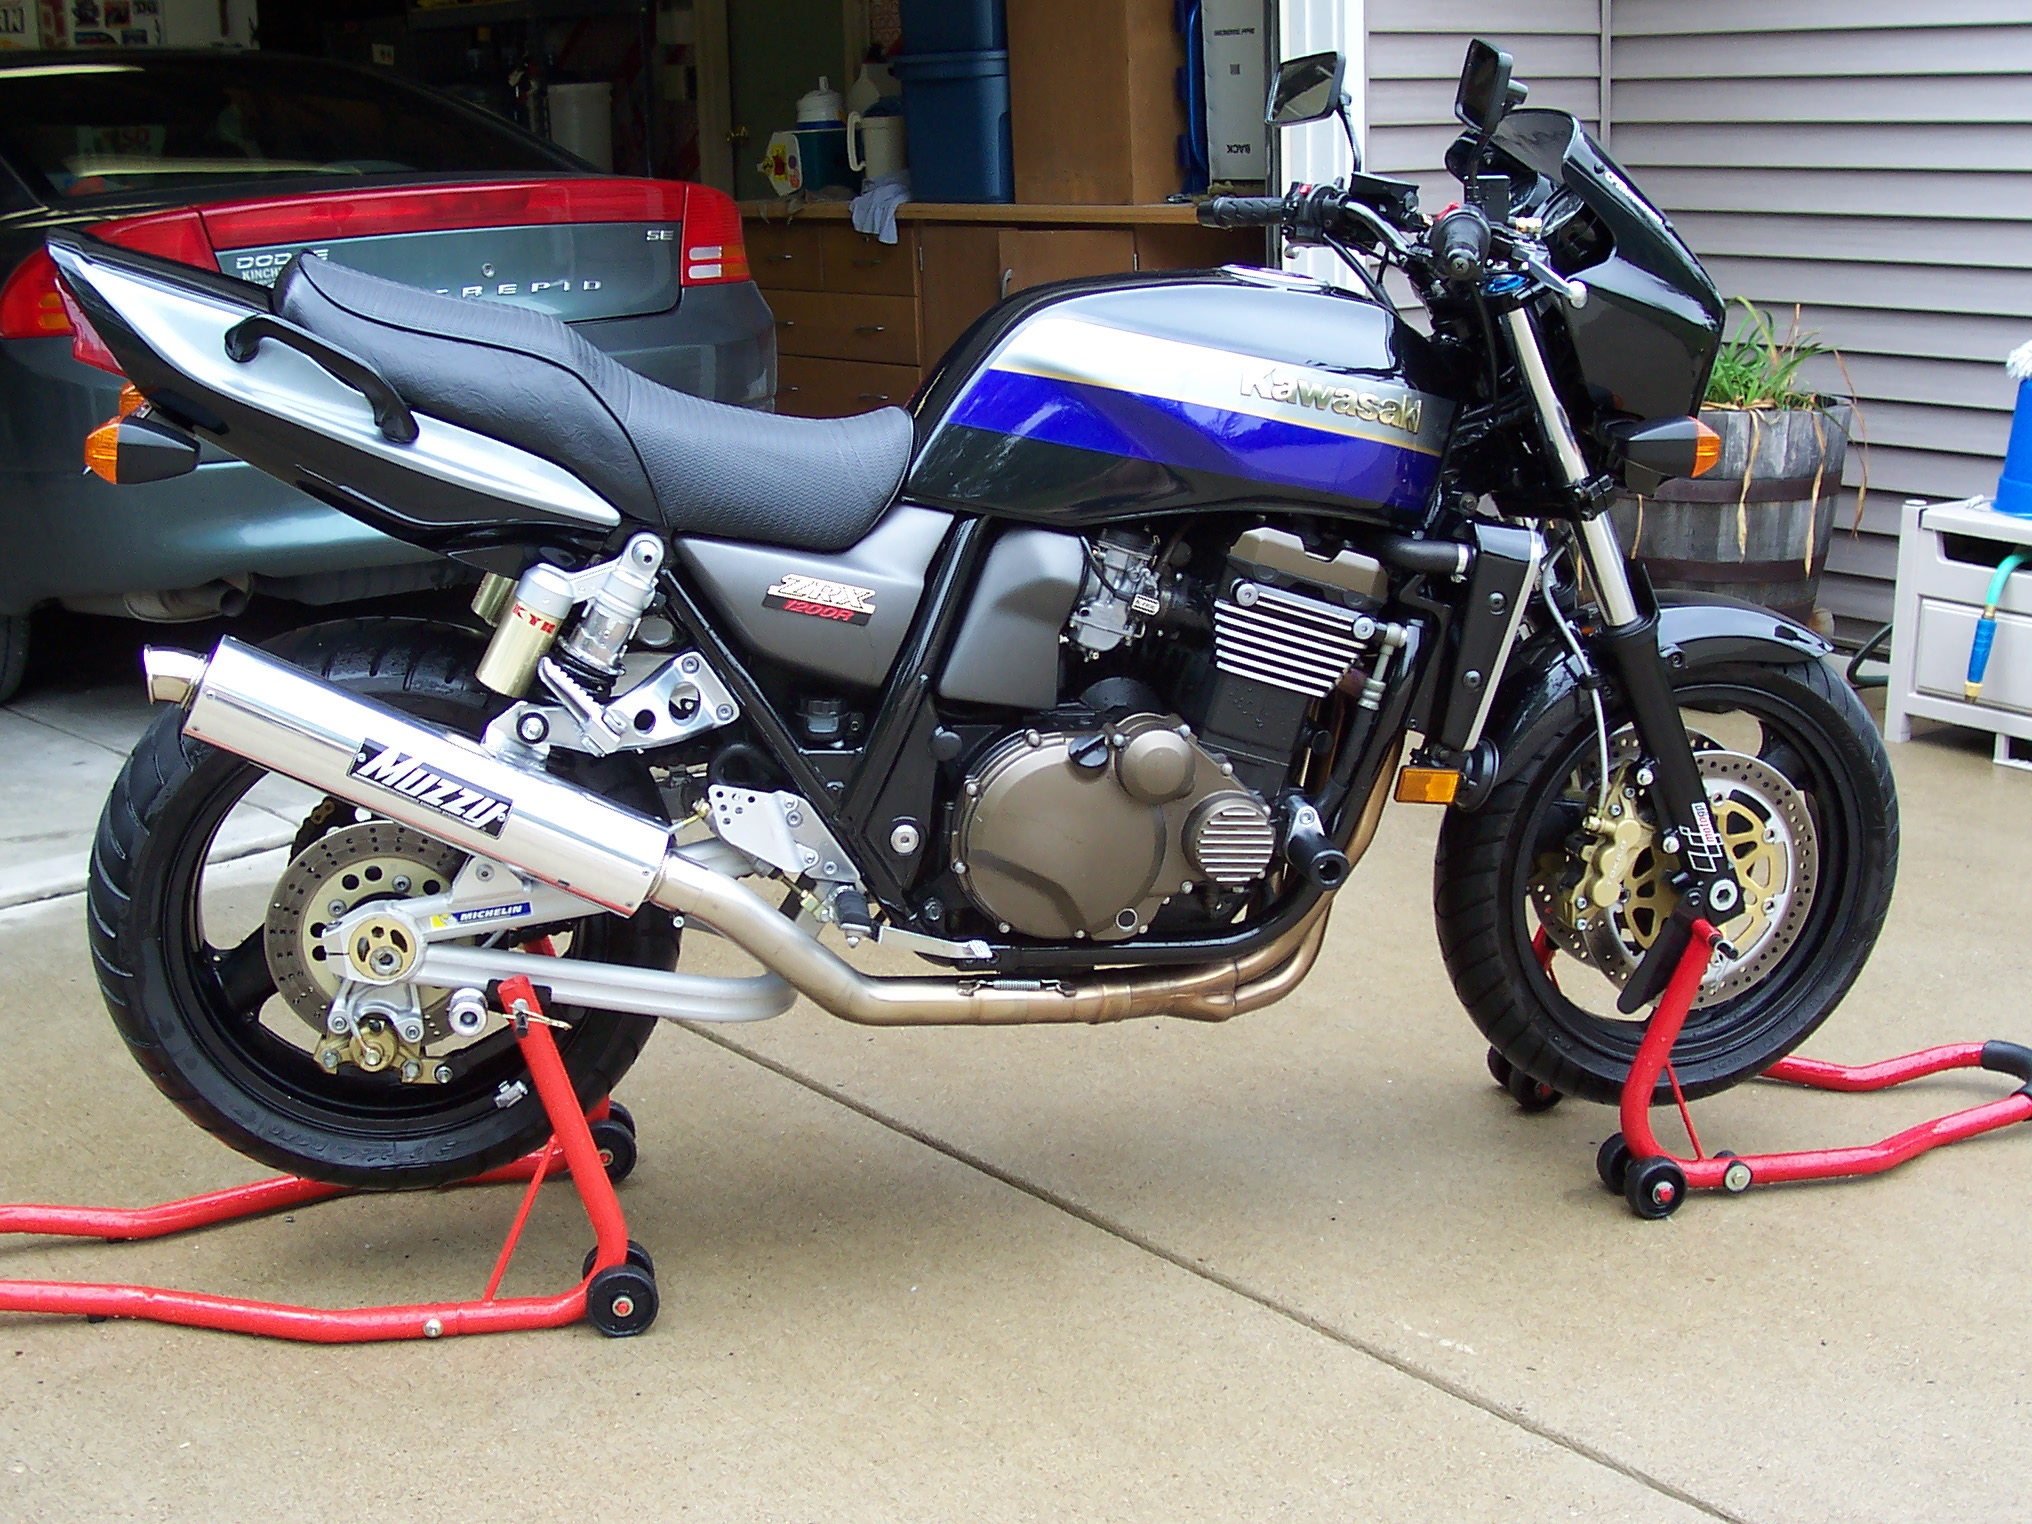 FOR SALE 2001 Kawasaki ZRX 1200R - Sportbikes.net